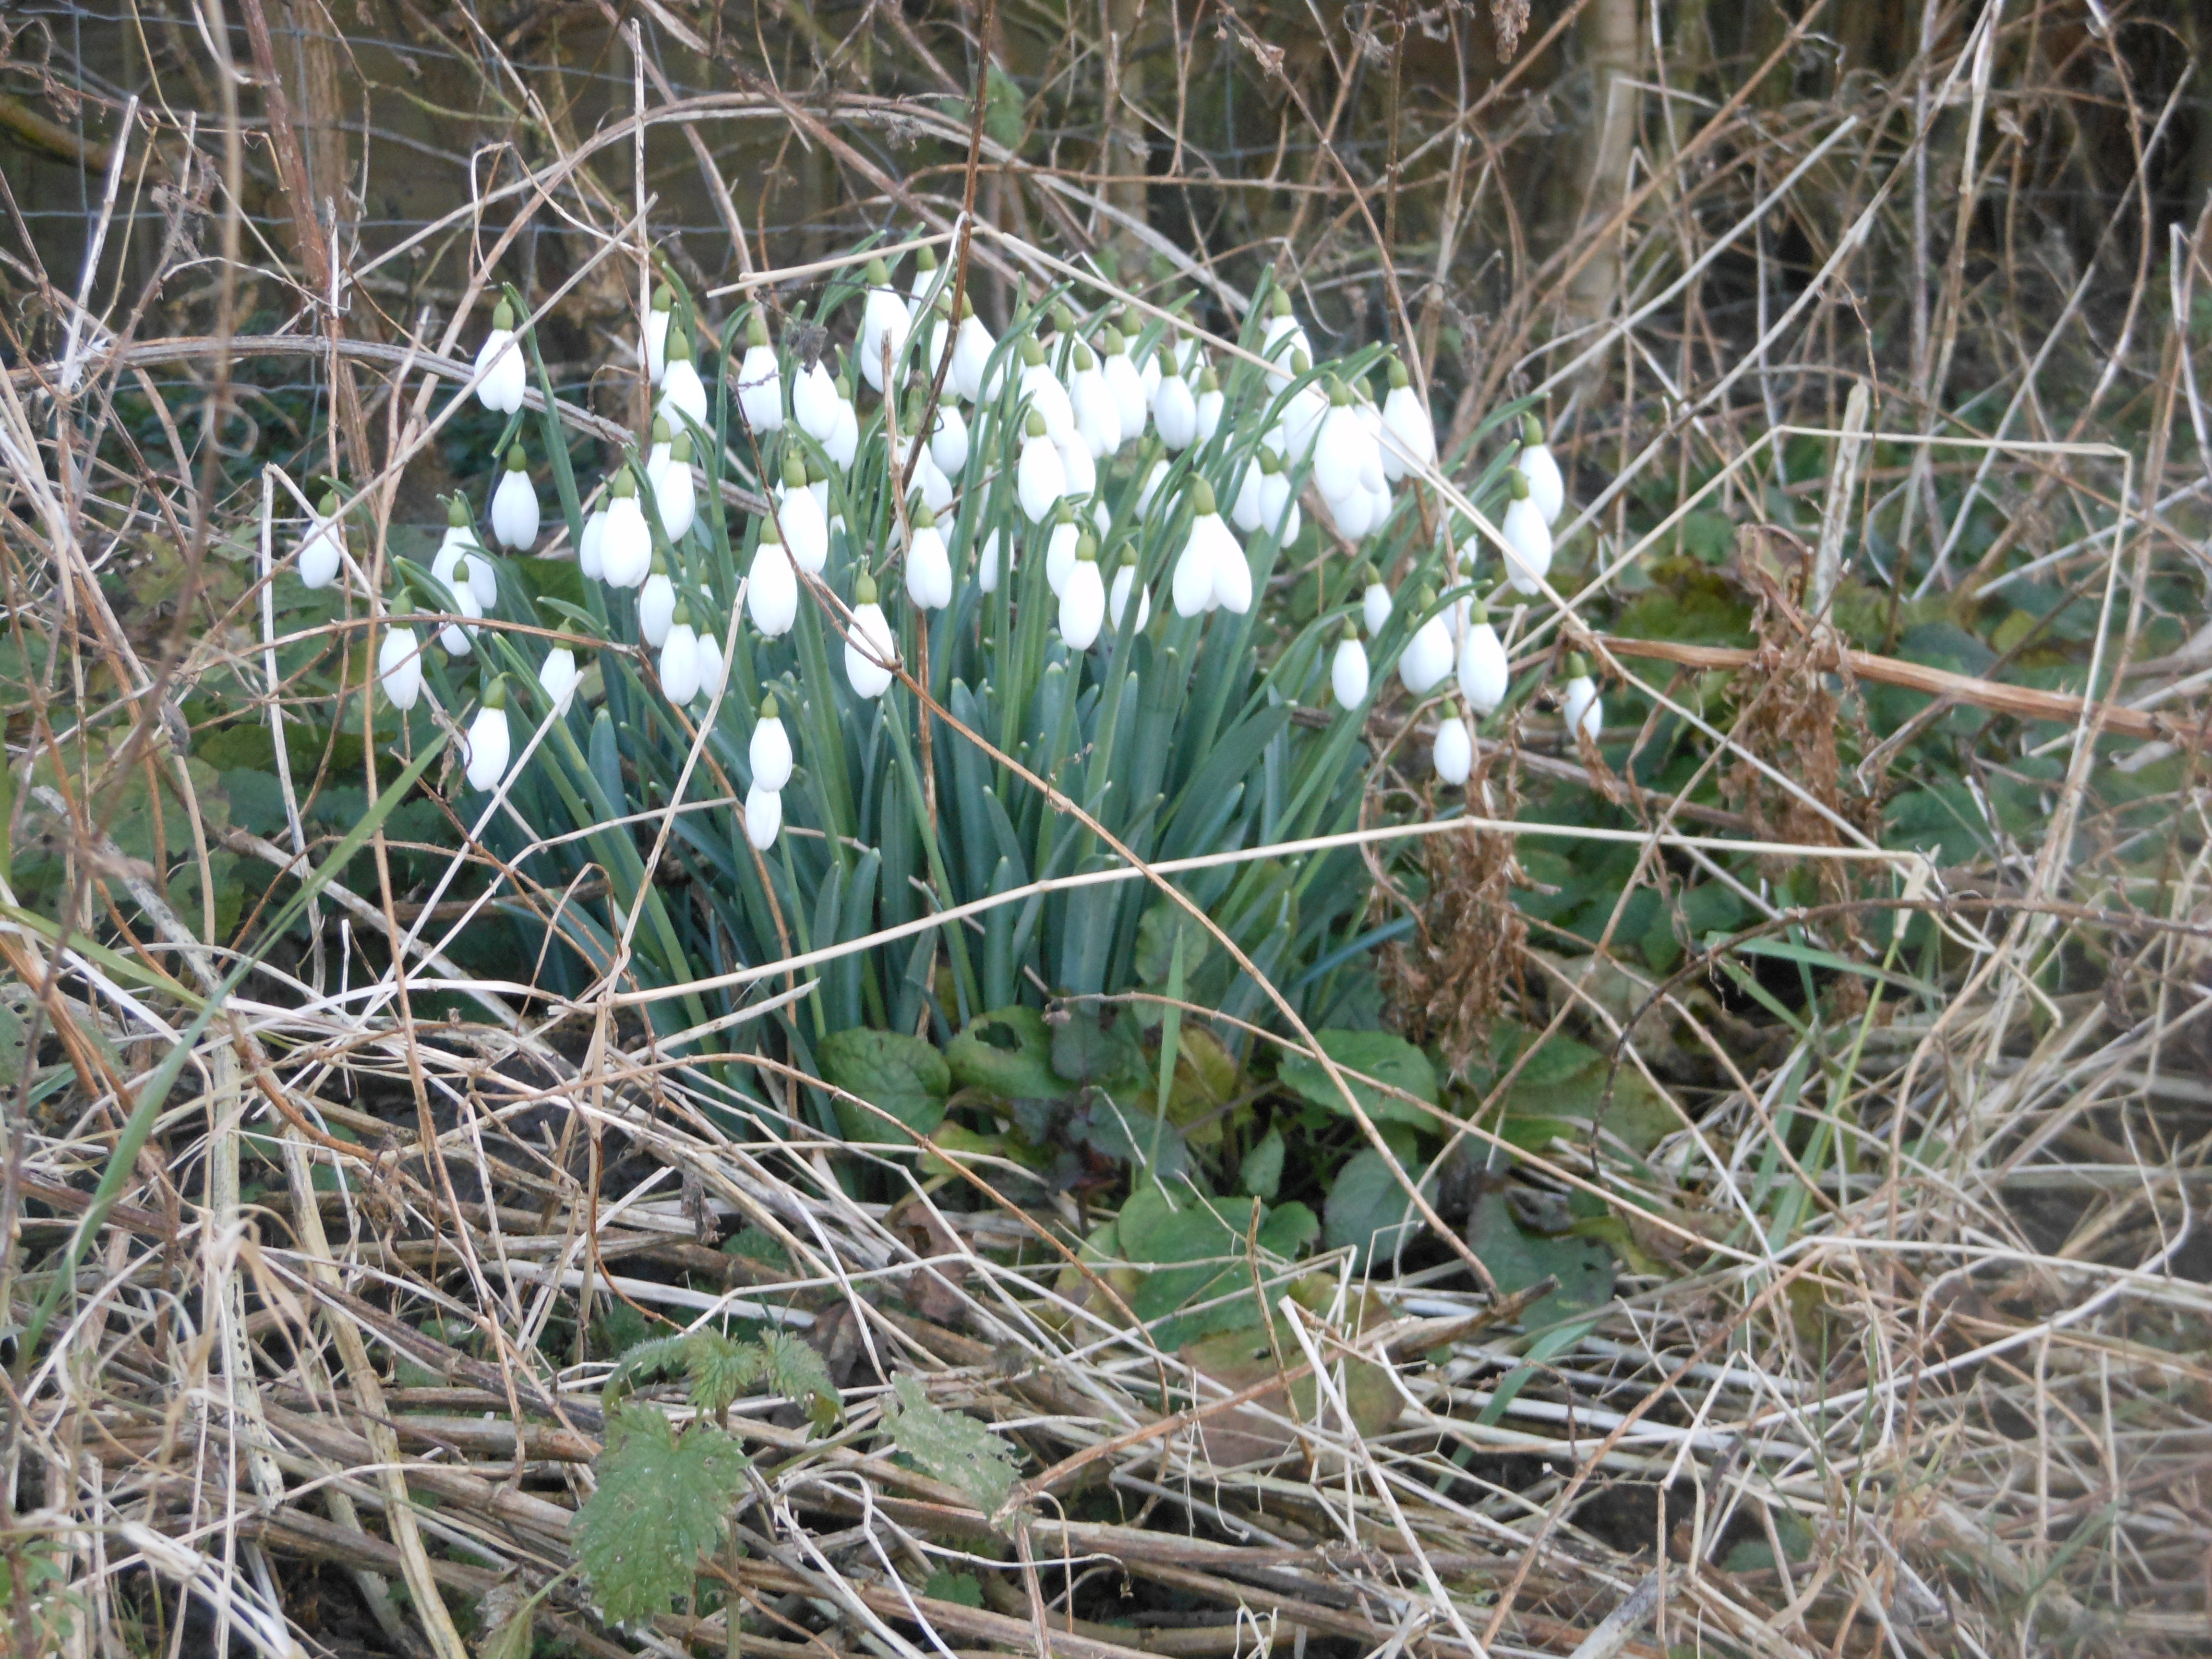 Free stock photo 12522 late winter early spring 1 freeimageslive plate winter flowers norfolk uk snowdropsp mightylinksfo